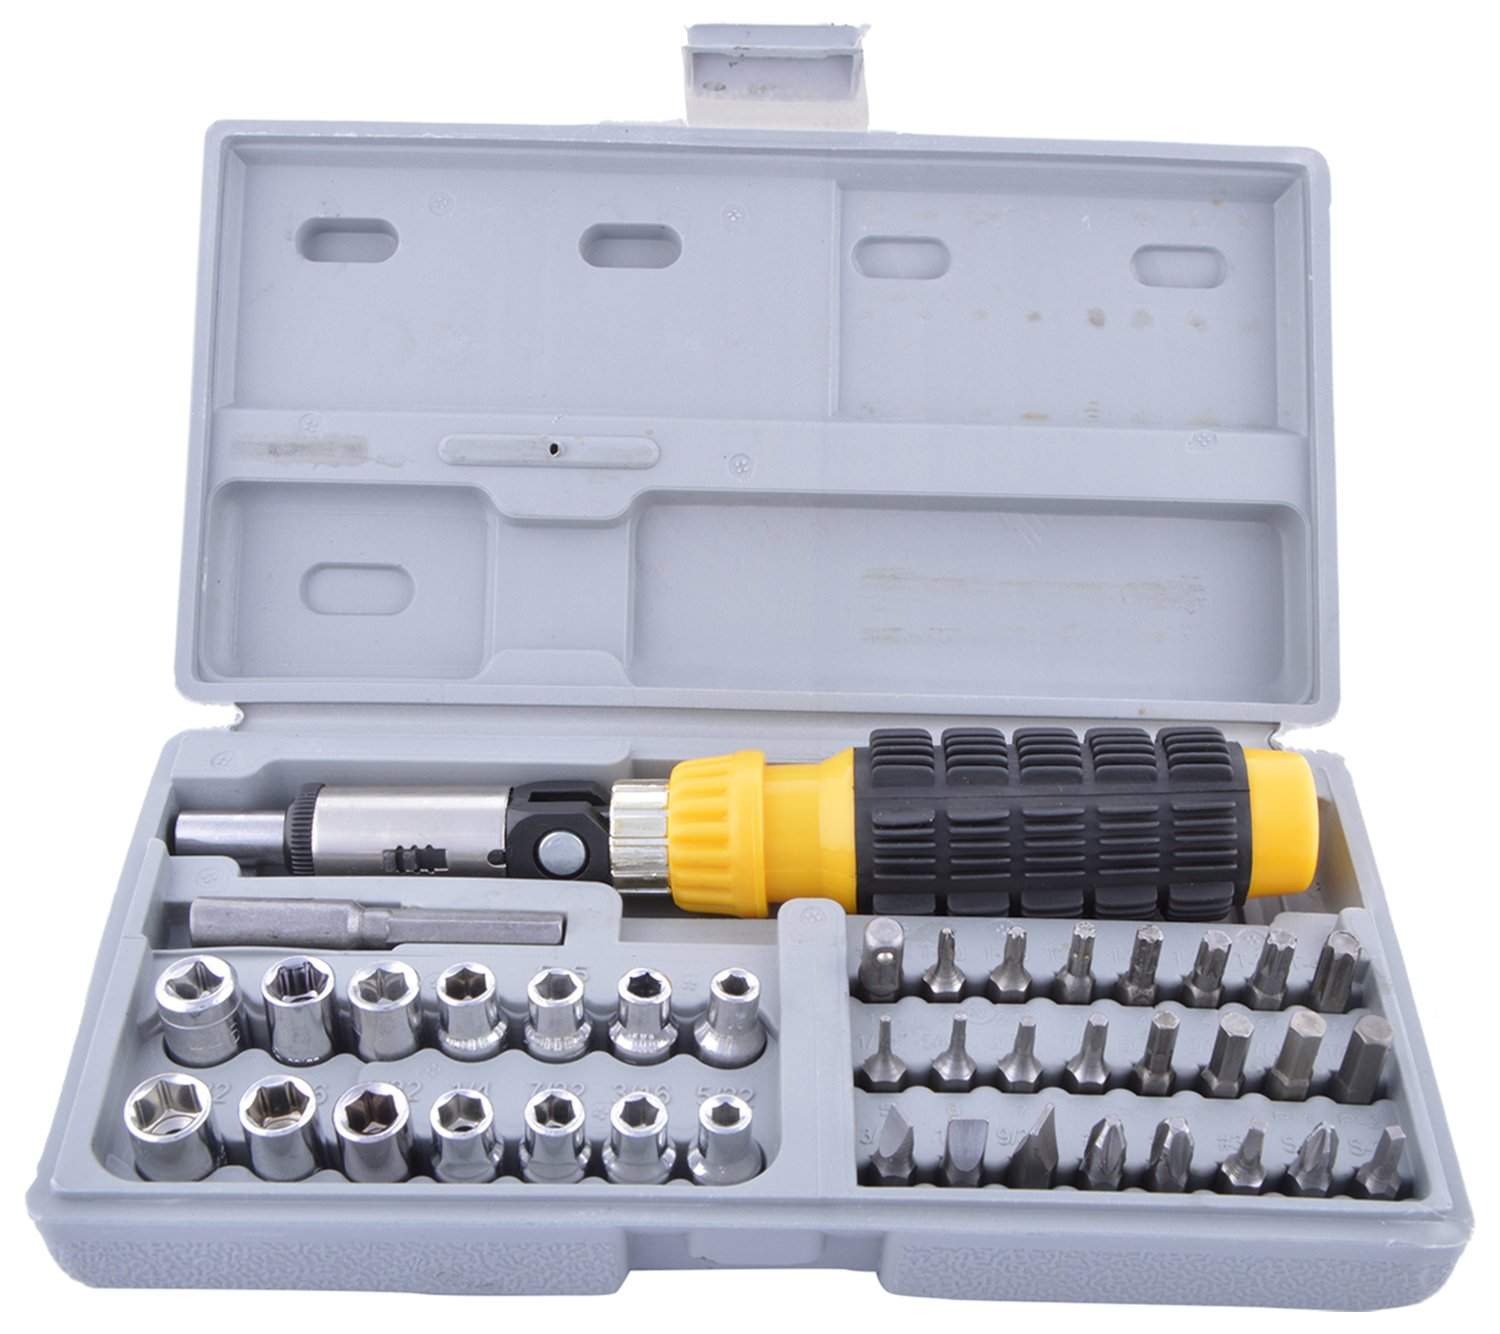 AIWA 41-Piece Bit & Socket Set ( Pack of 7 Sockets)